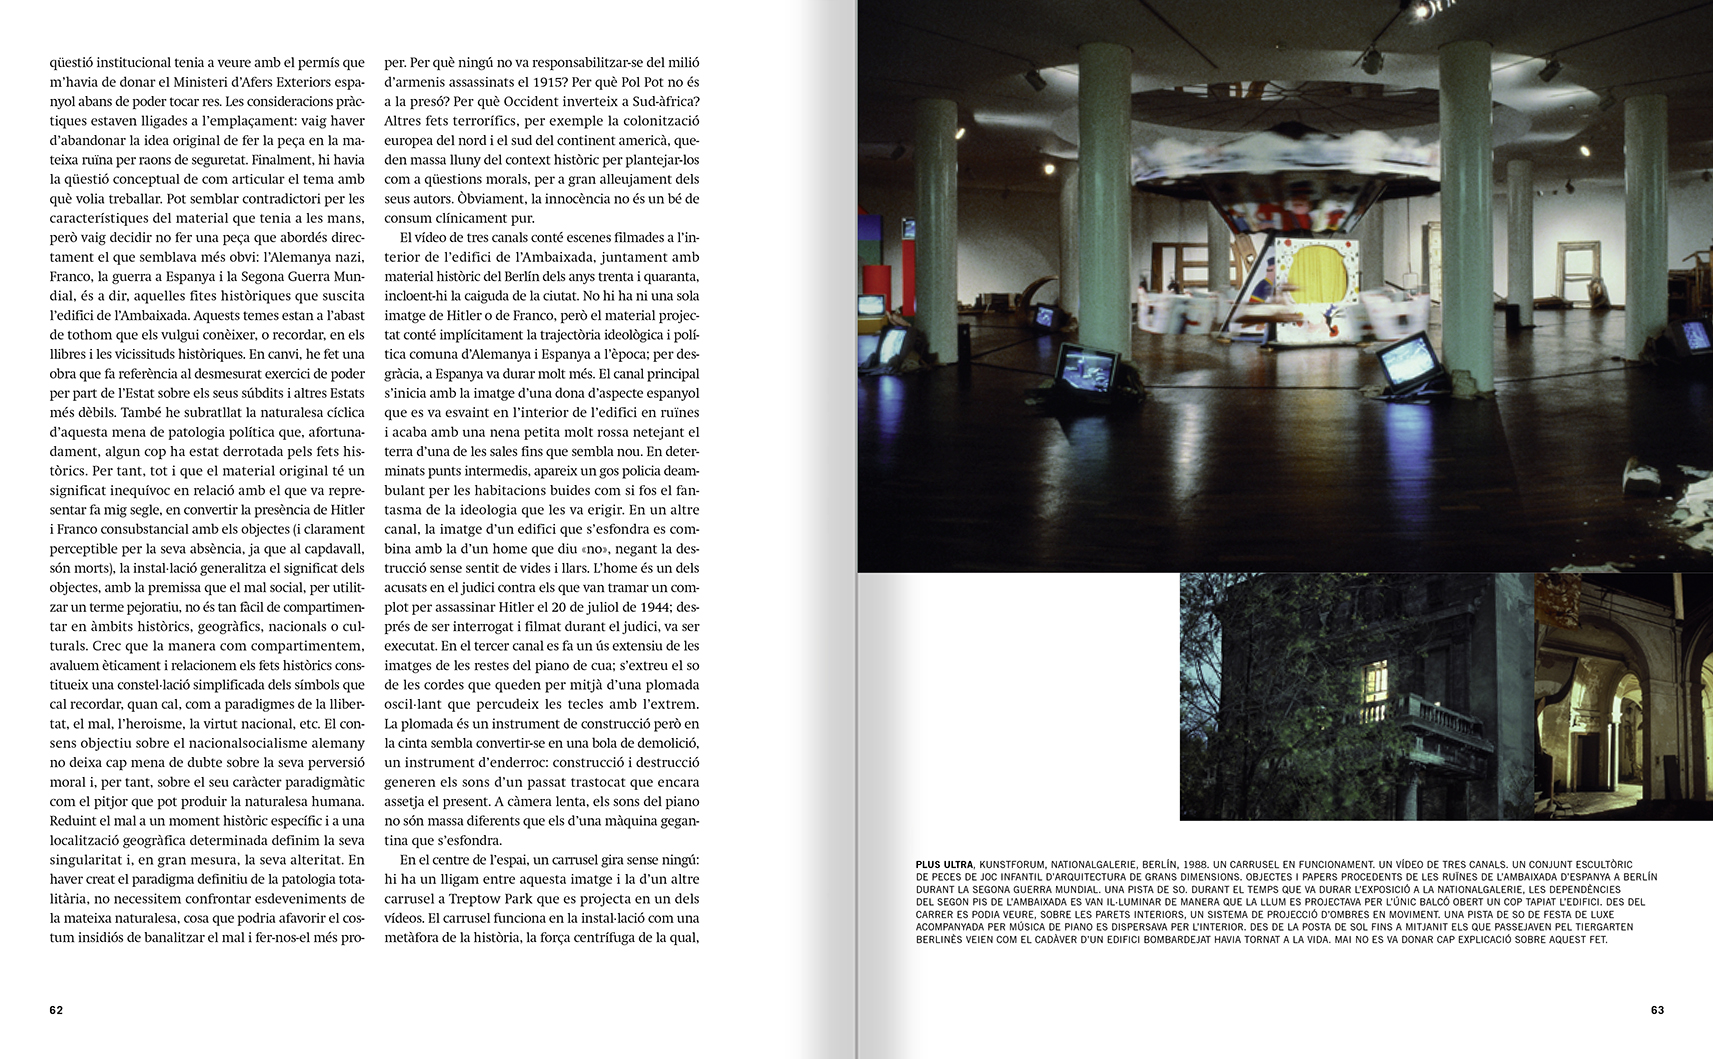 Selection from the catalogue 'Francesc Torres. Da capo', pages 62 and 63